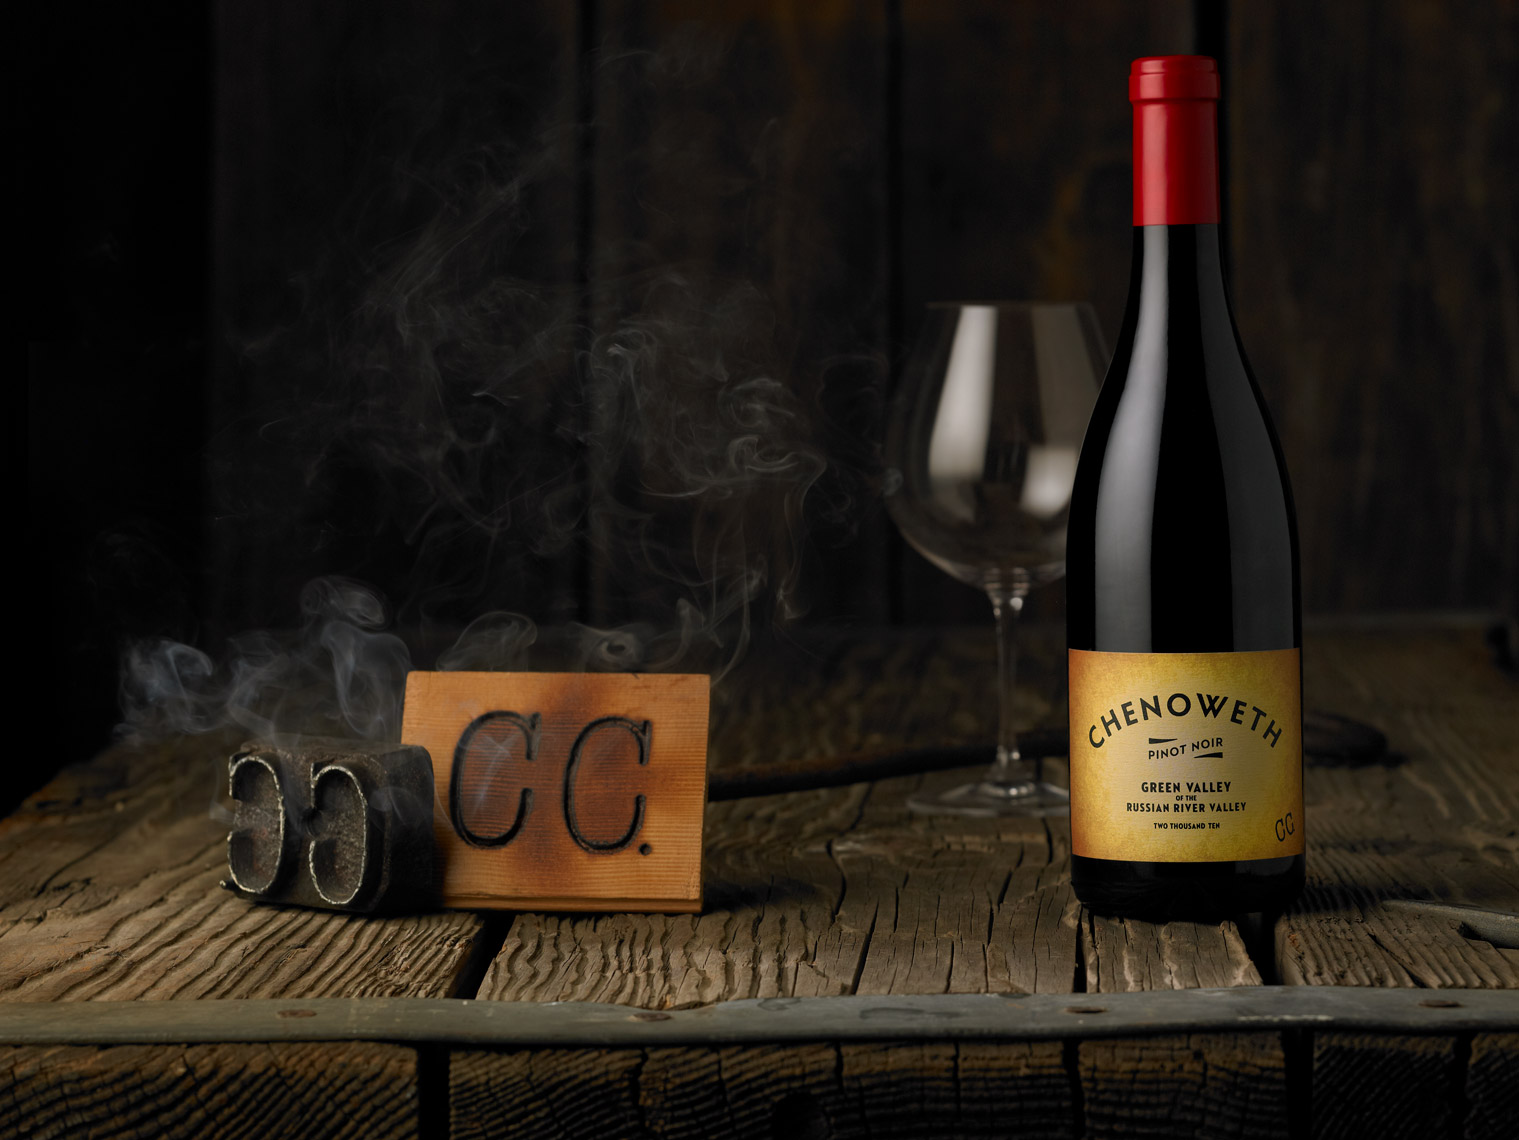 AlanCampbellPhotography, Chenoweth Vineyards wine shot with cool brand